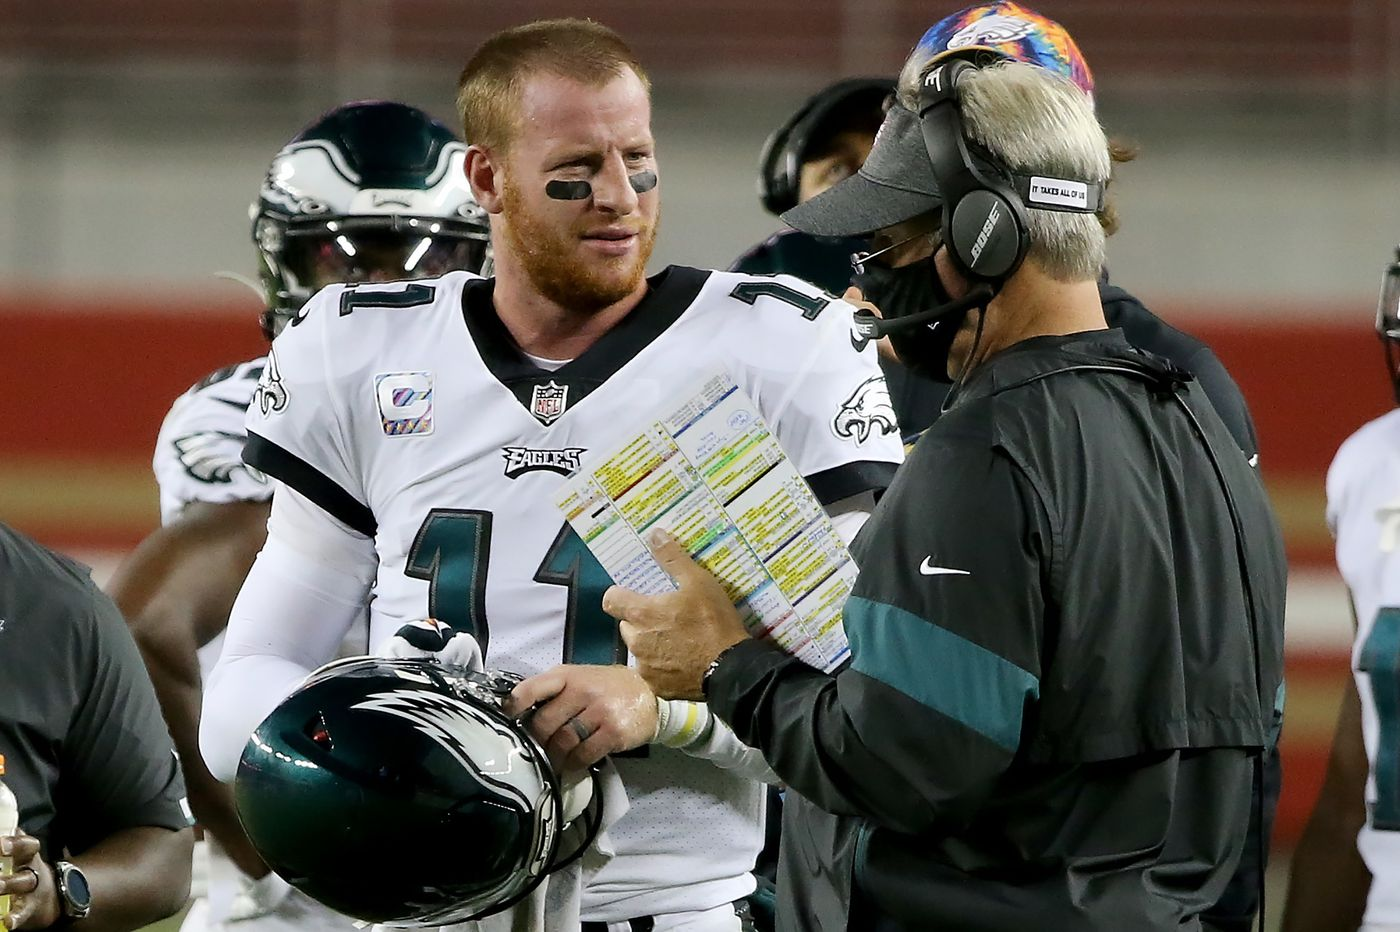 As the Eagles return from the bye week, some persistent problems really need quick resolutions